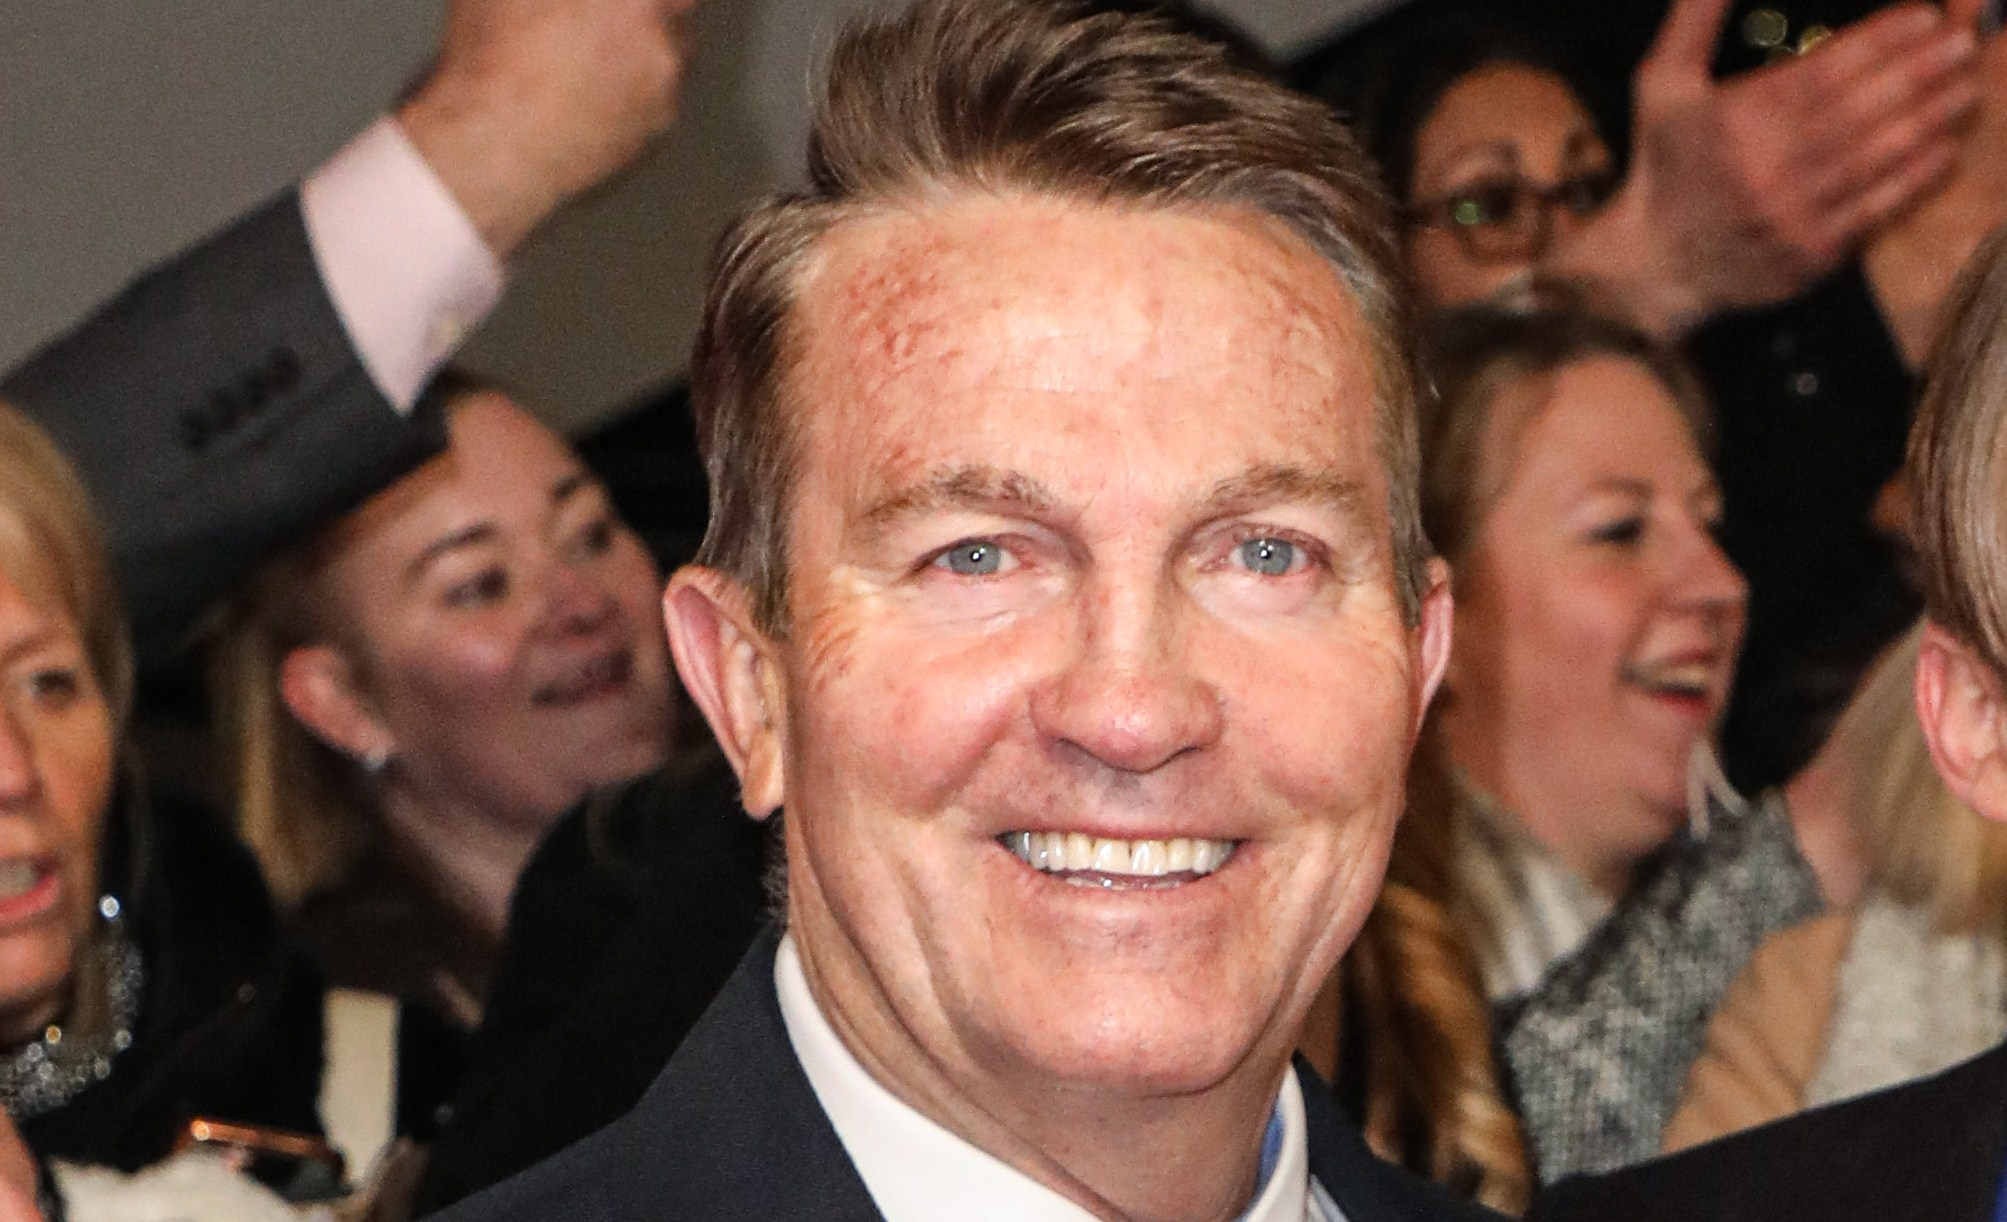 Bradley Walsh made £8.5 million last year from his property and production companies